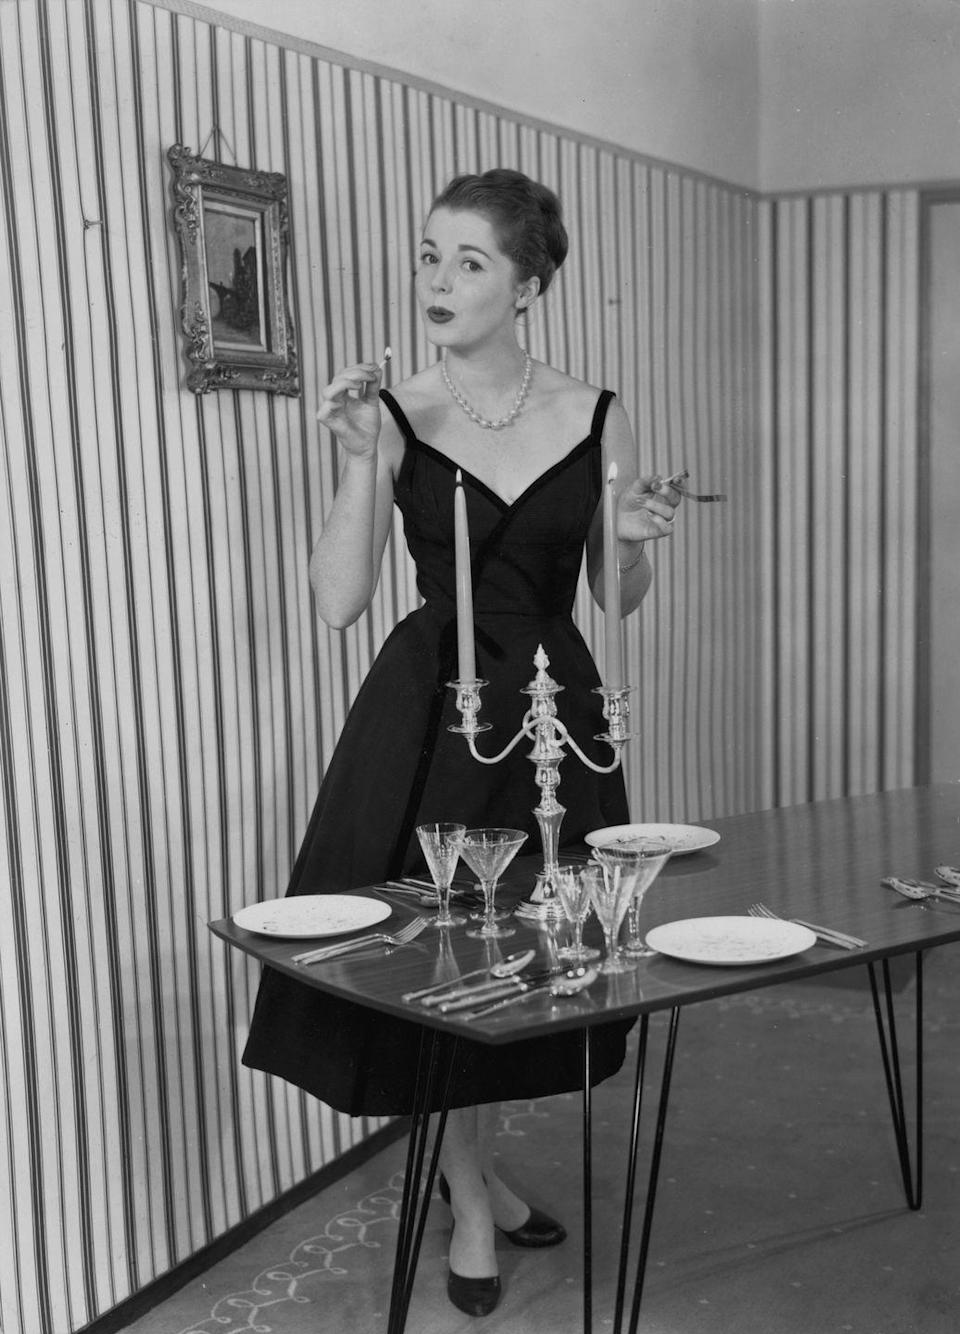 <p>Again, it wasn't just your good friends that you'd entertain at these parties, but people you wanted to impress. So hosts would often polish their silver and bring out the fine china when hosting.</p>